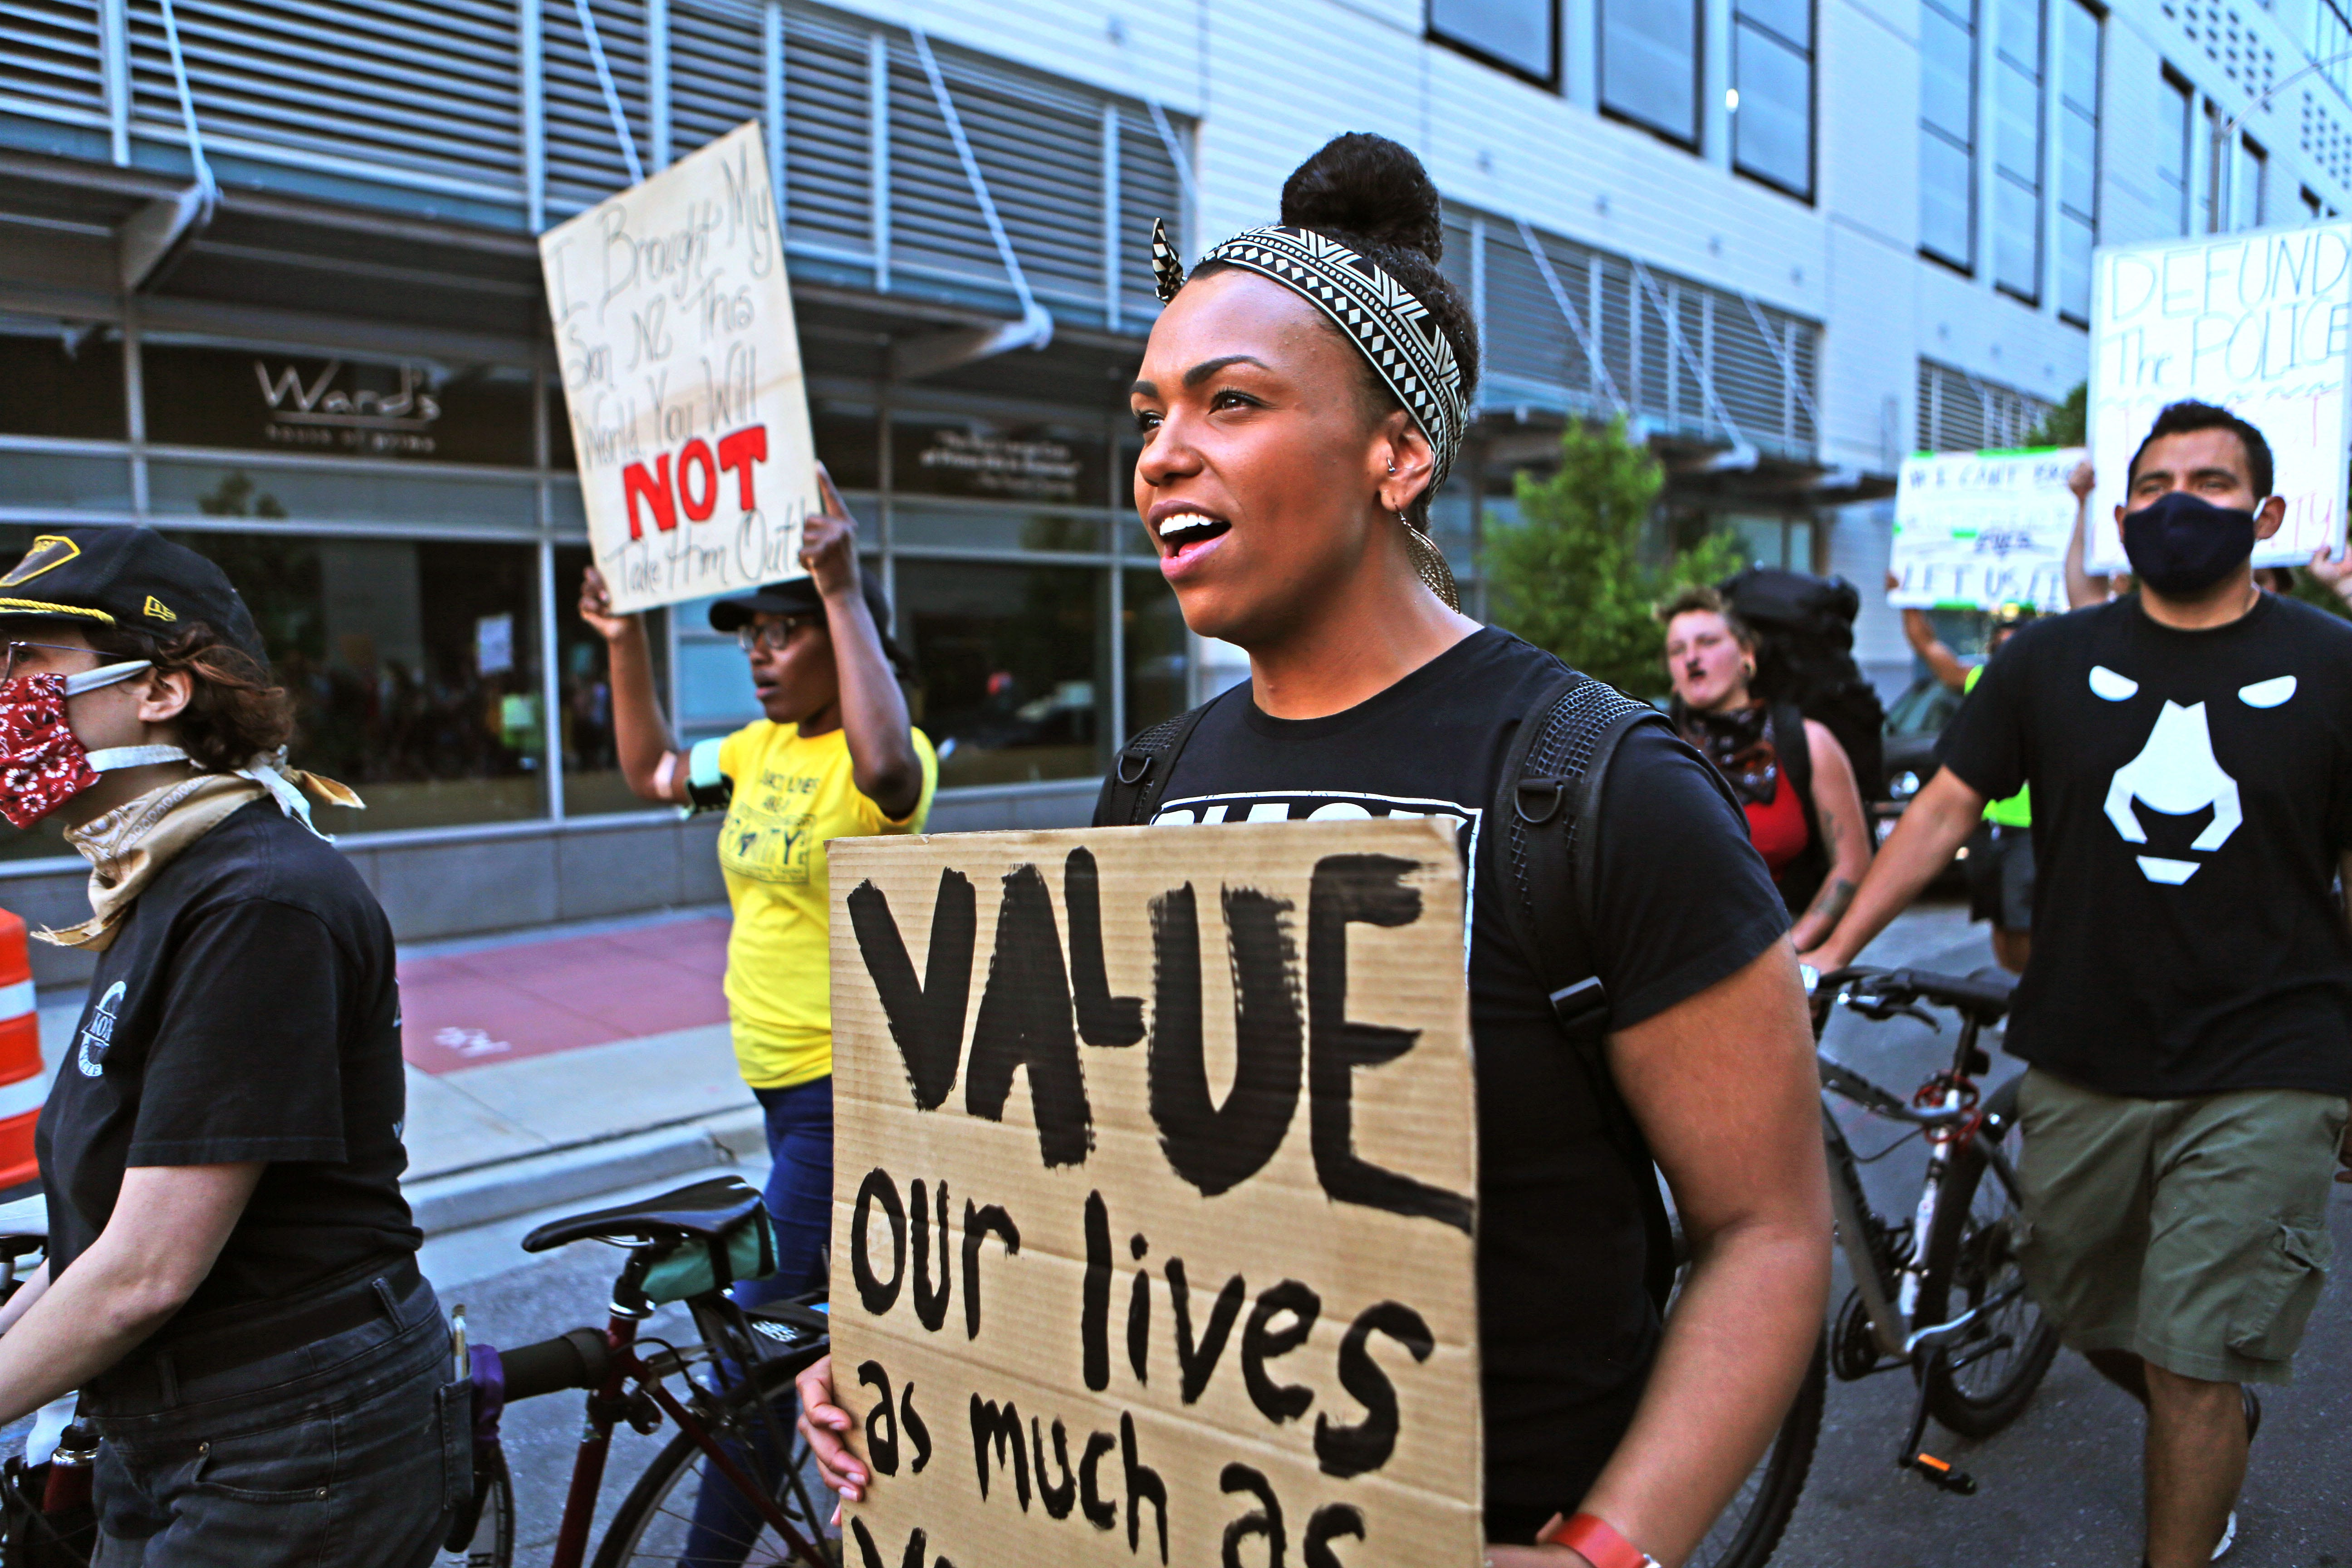 Jesse Ambos-Kleckley, 30, marches with others in downtown Milwaukee to bring attention to police brutality on June 16.